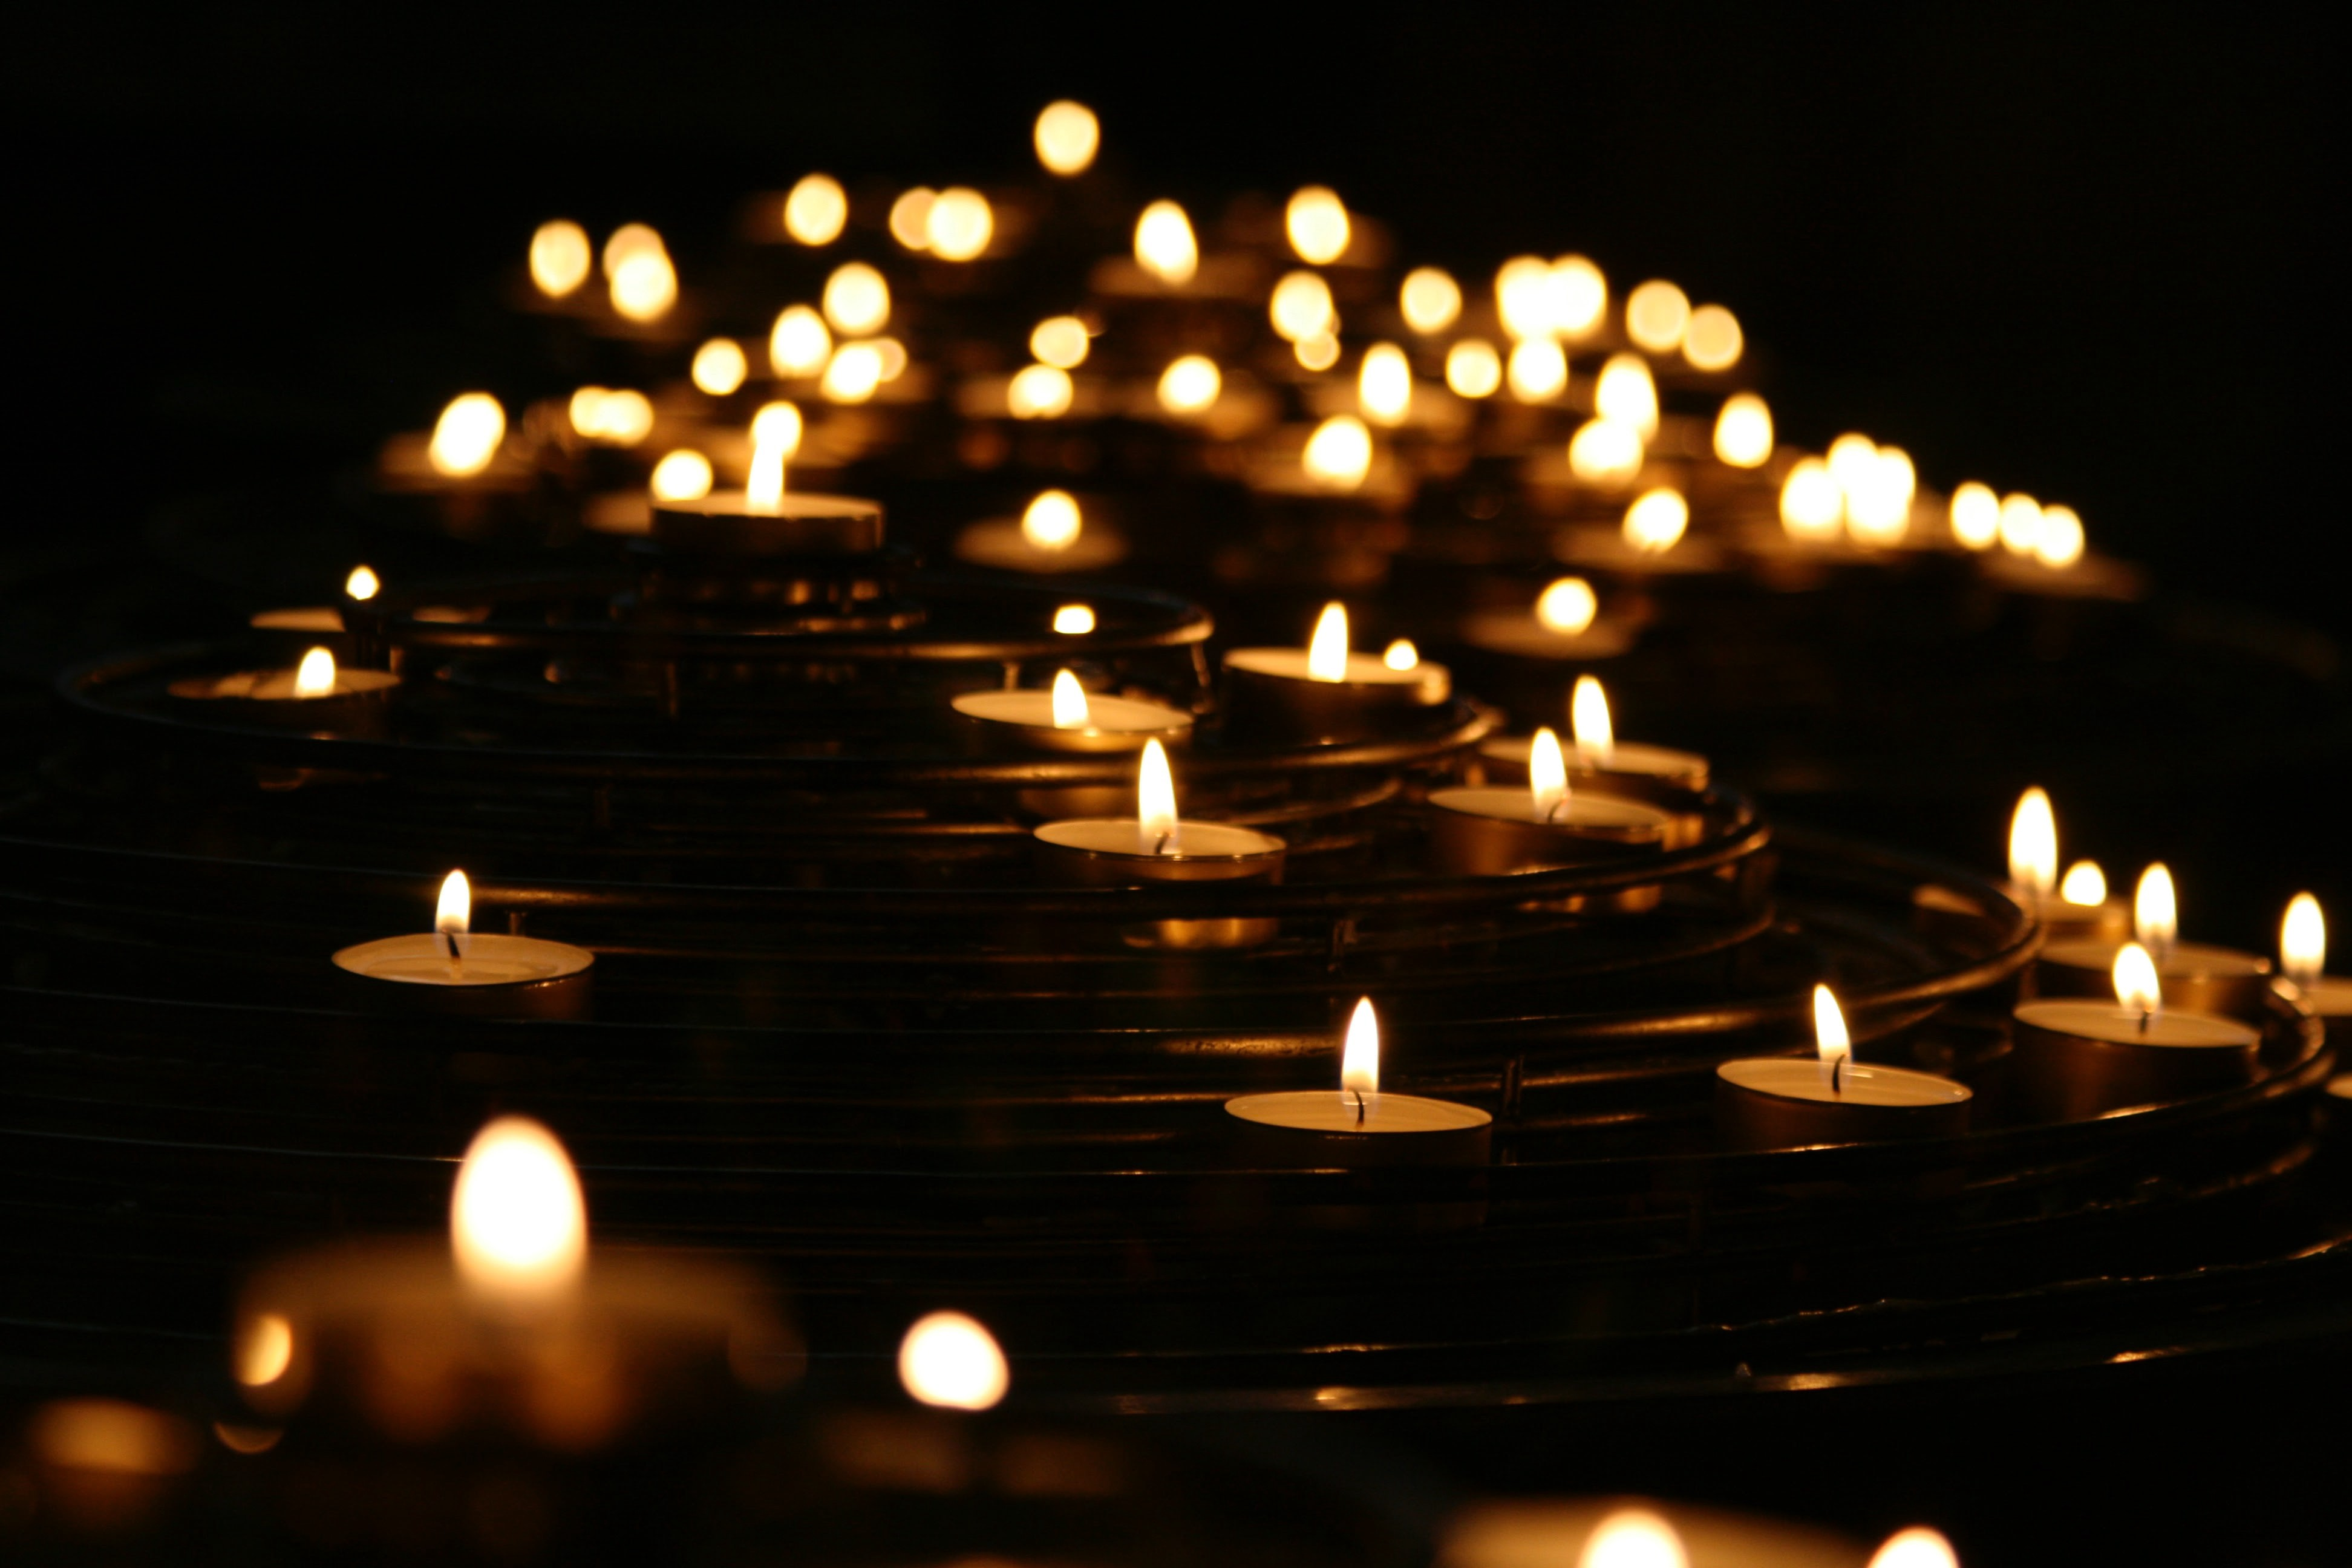 Votive candles floating on a dark sea